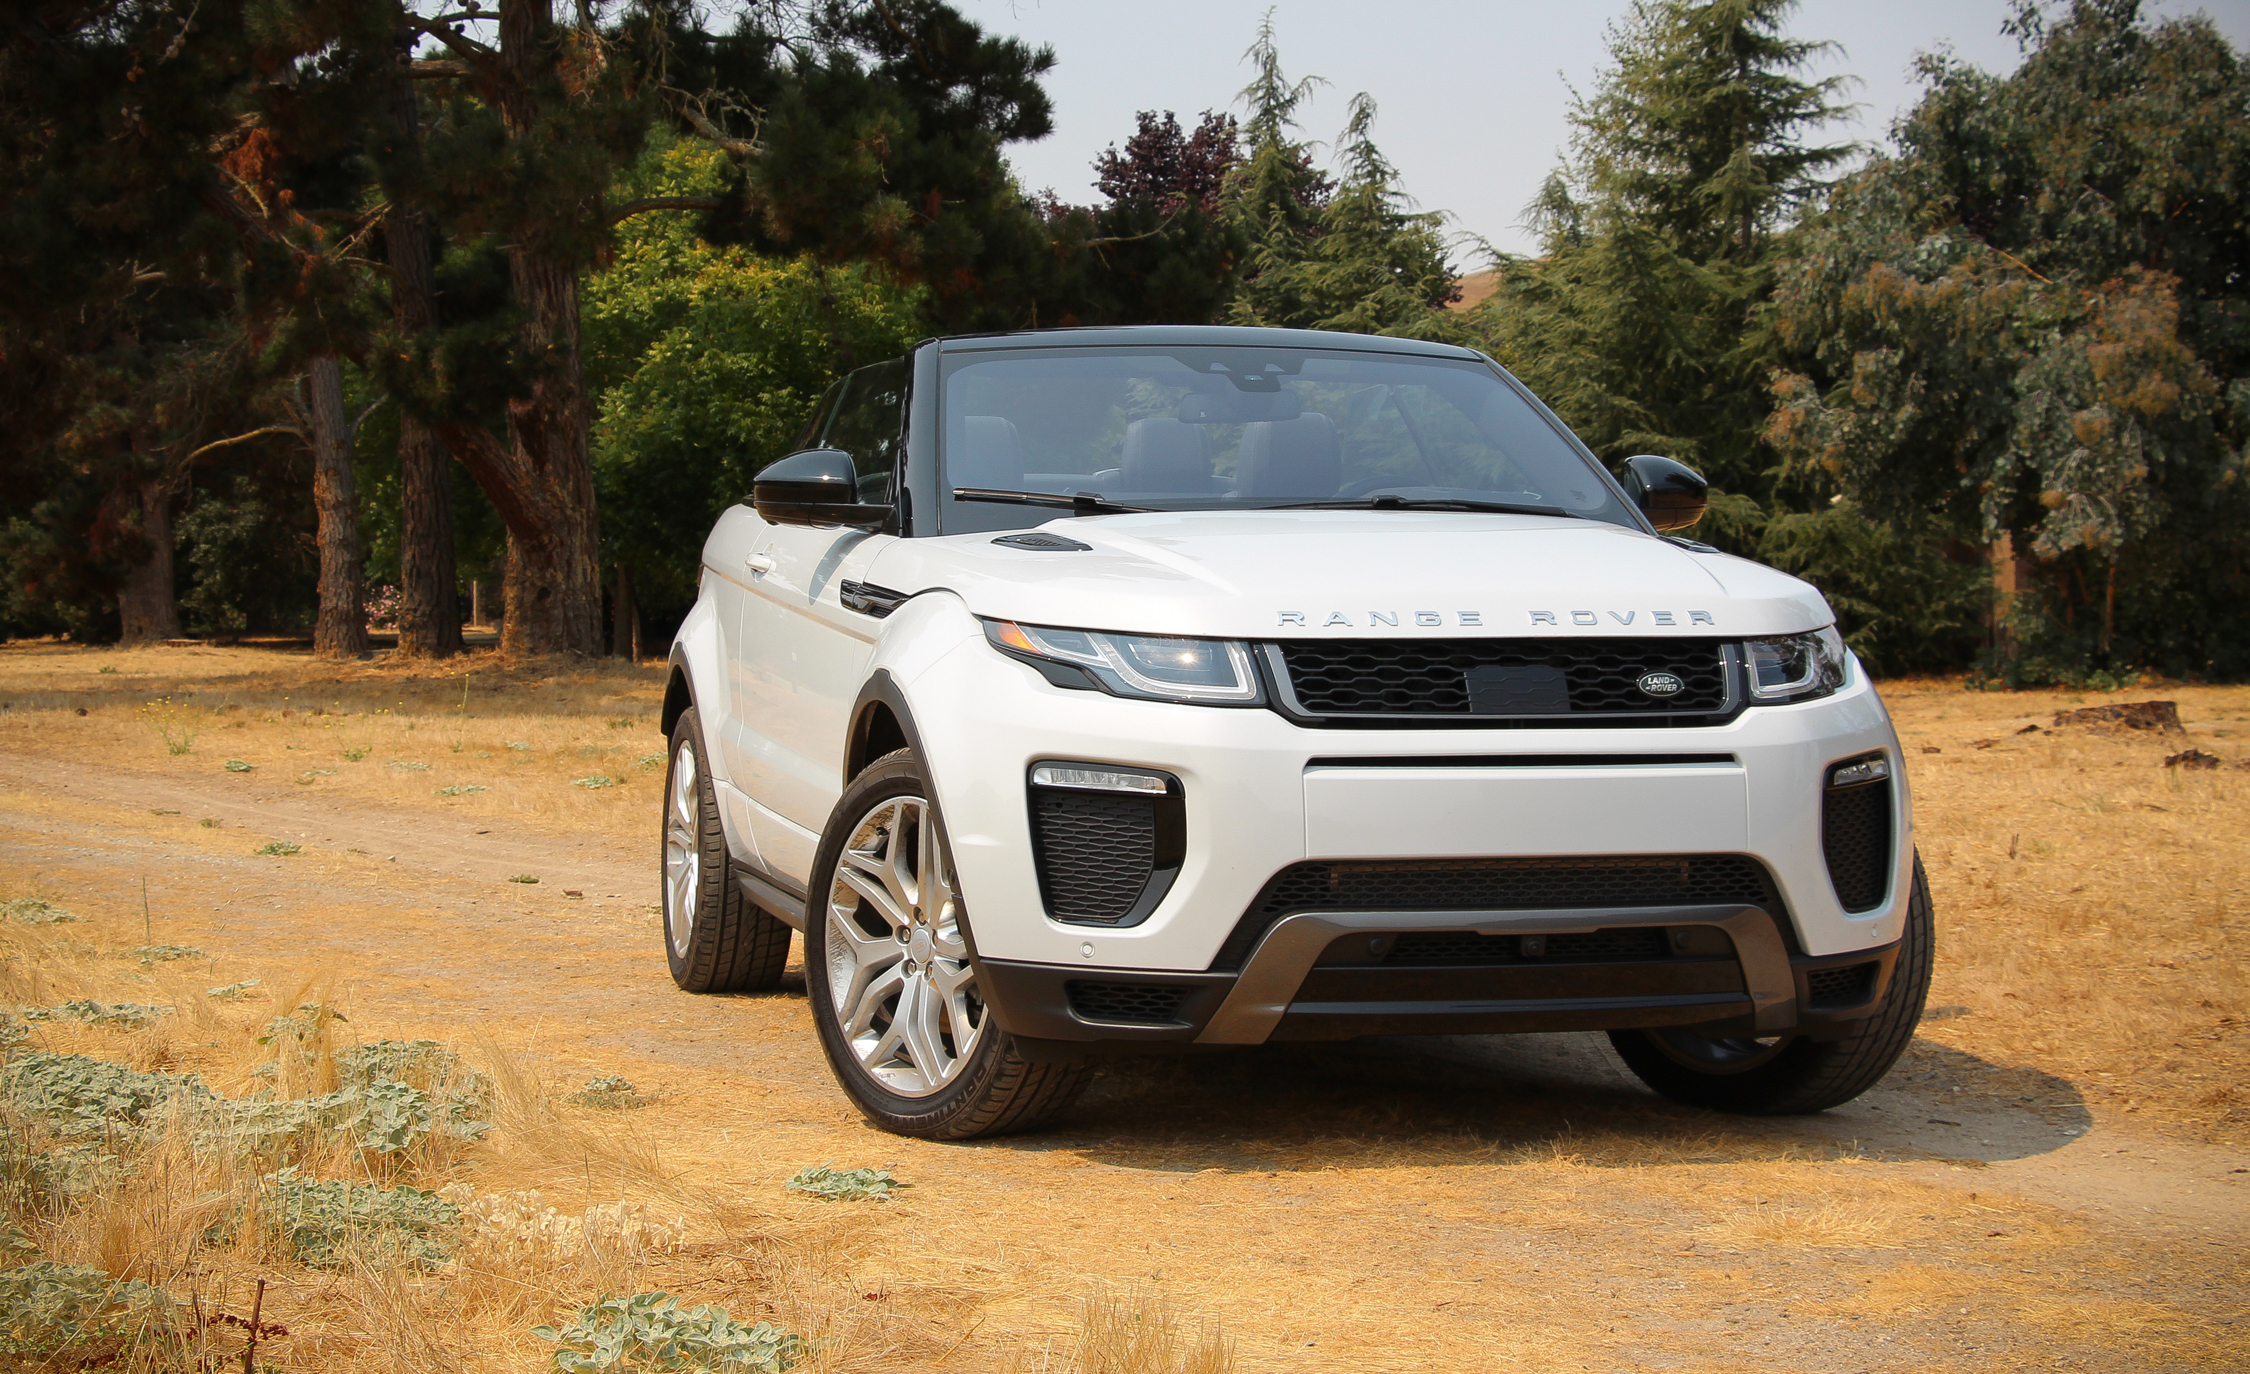 2017 Land Rover Range Rover Evoque Convertible Exterior Open Roof (Photo 3 of 14)